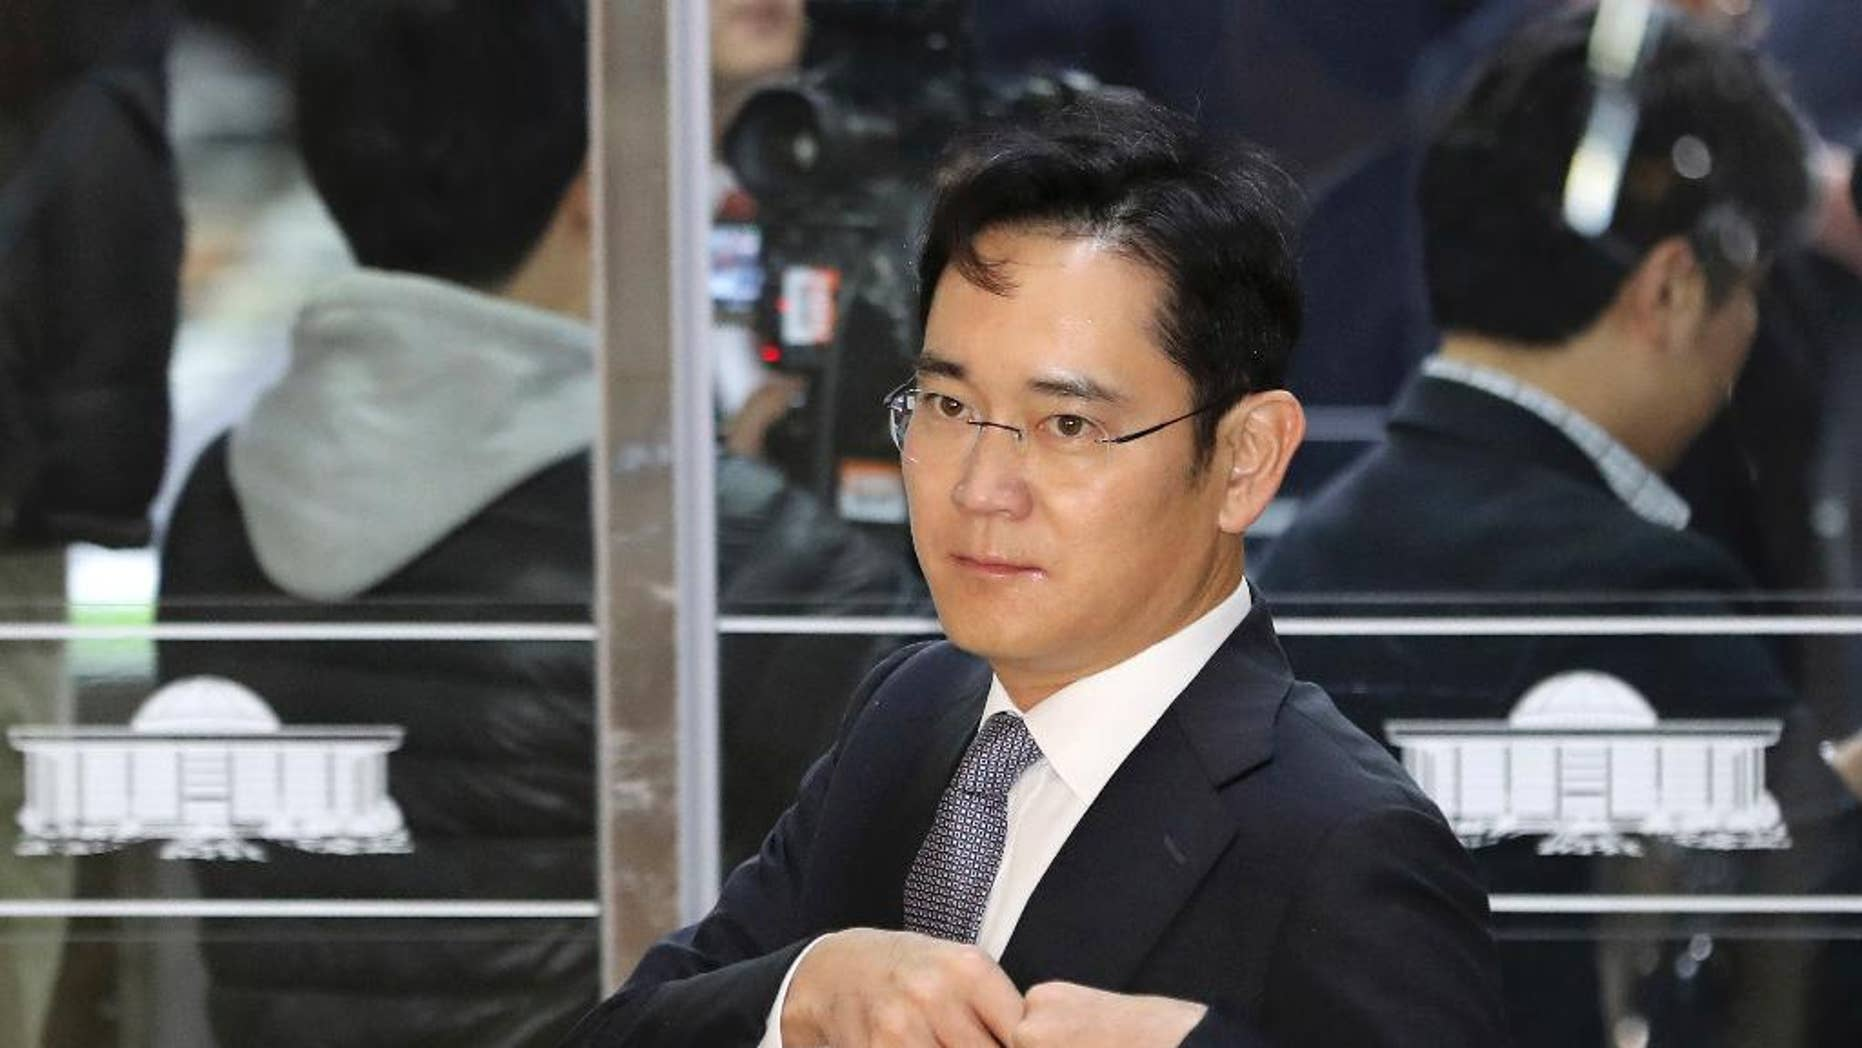 Lee Jae-yong, a vice chairman of Samsung Electronics Co. arrives for hearing at the National Assembly in Seoul, South Korea, Tuesday, Dec. 6, 2016. South Korea's most powerful business leaders from Samsung, Hyundai Motor and six other companies face grilling as lawmakers probe their links to a corruption scandal involving South Korea's president and her confidante. (AP Photo/Lee Jin-man)